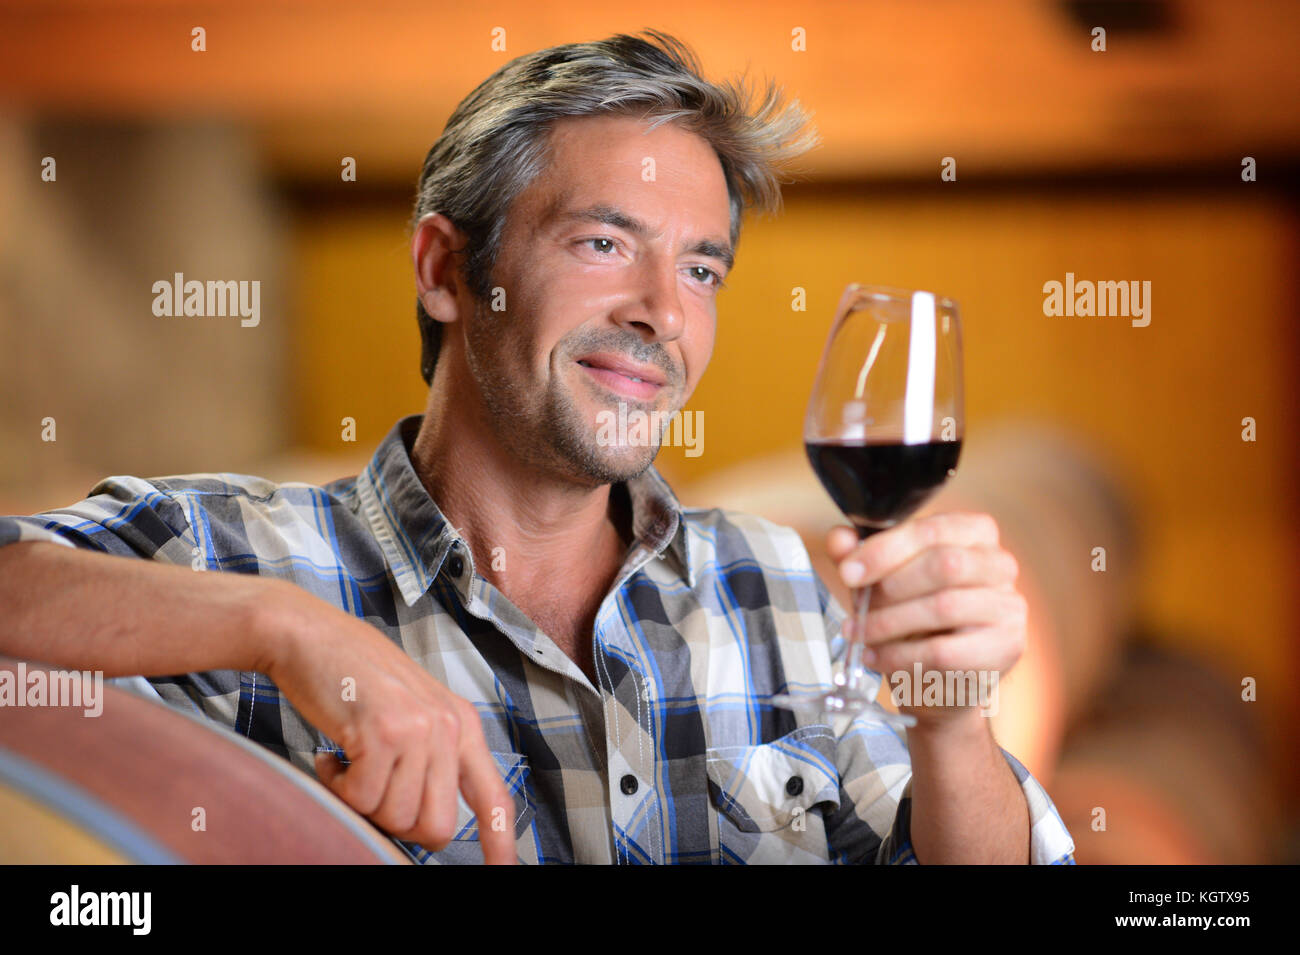 Winemaker looking at red wine in glass - Stock Image